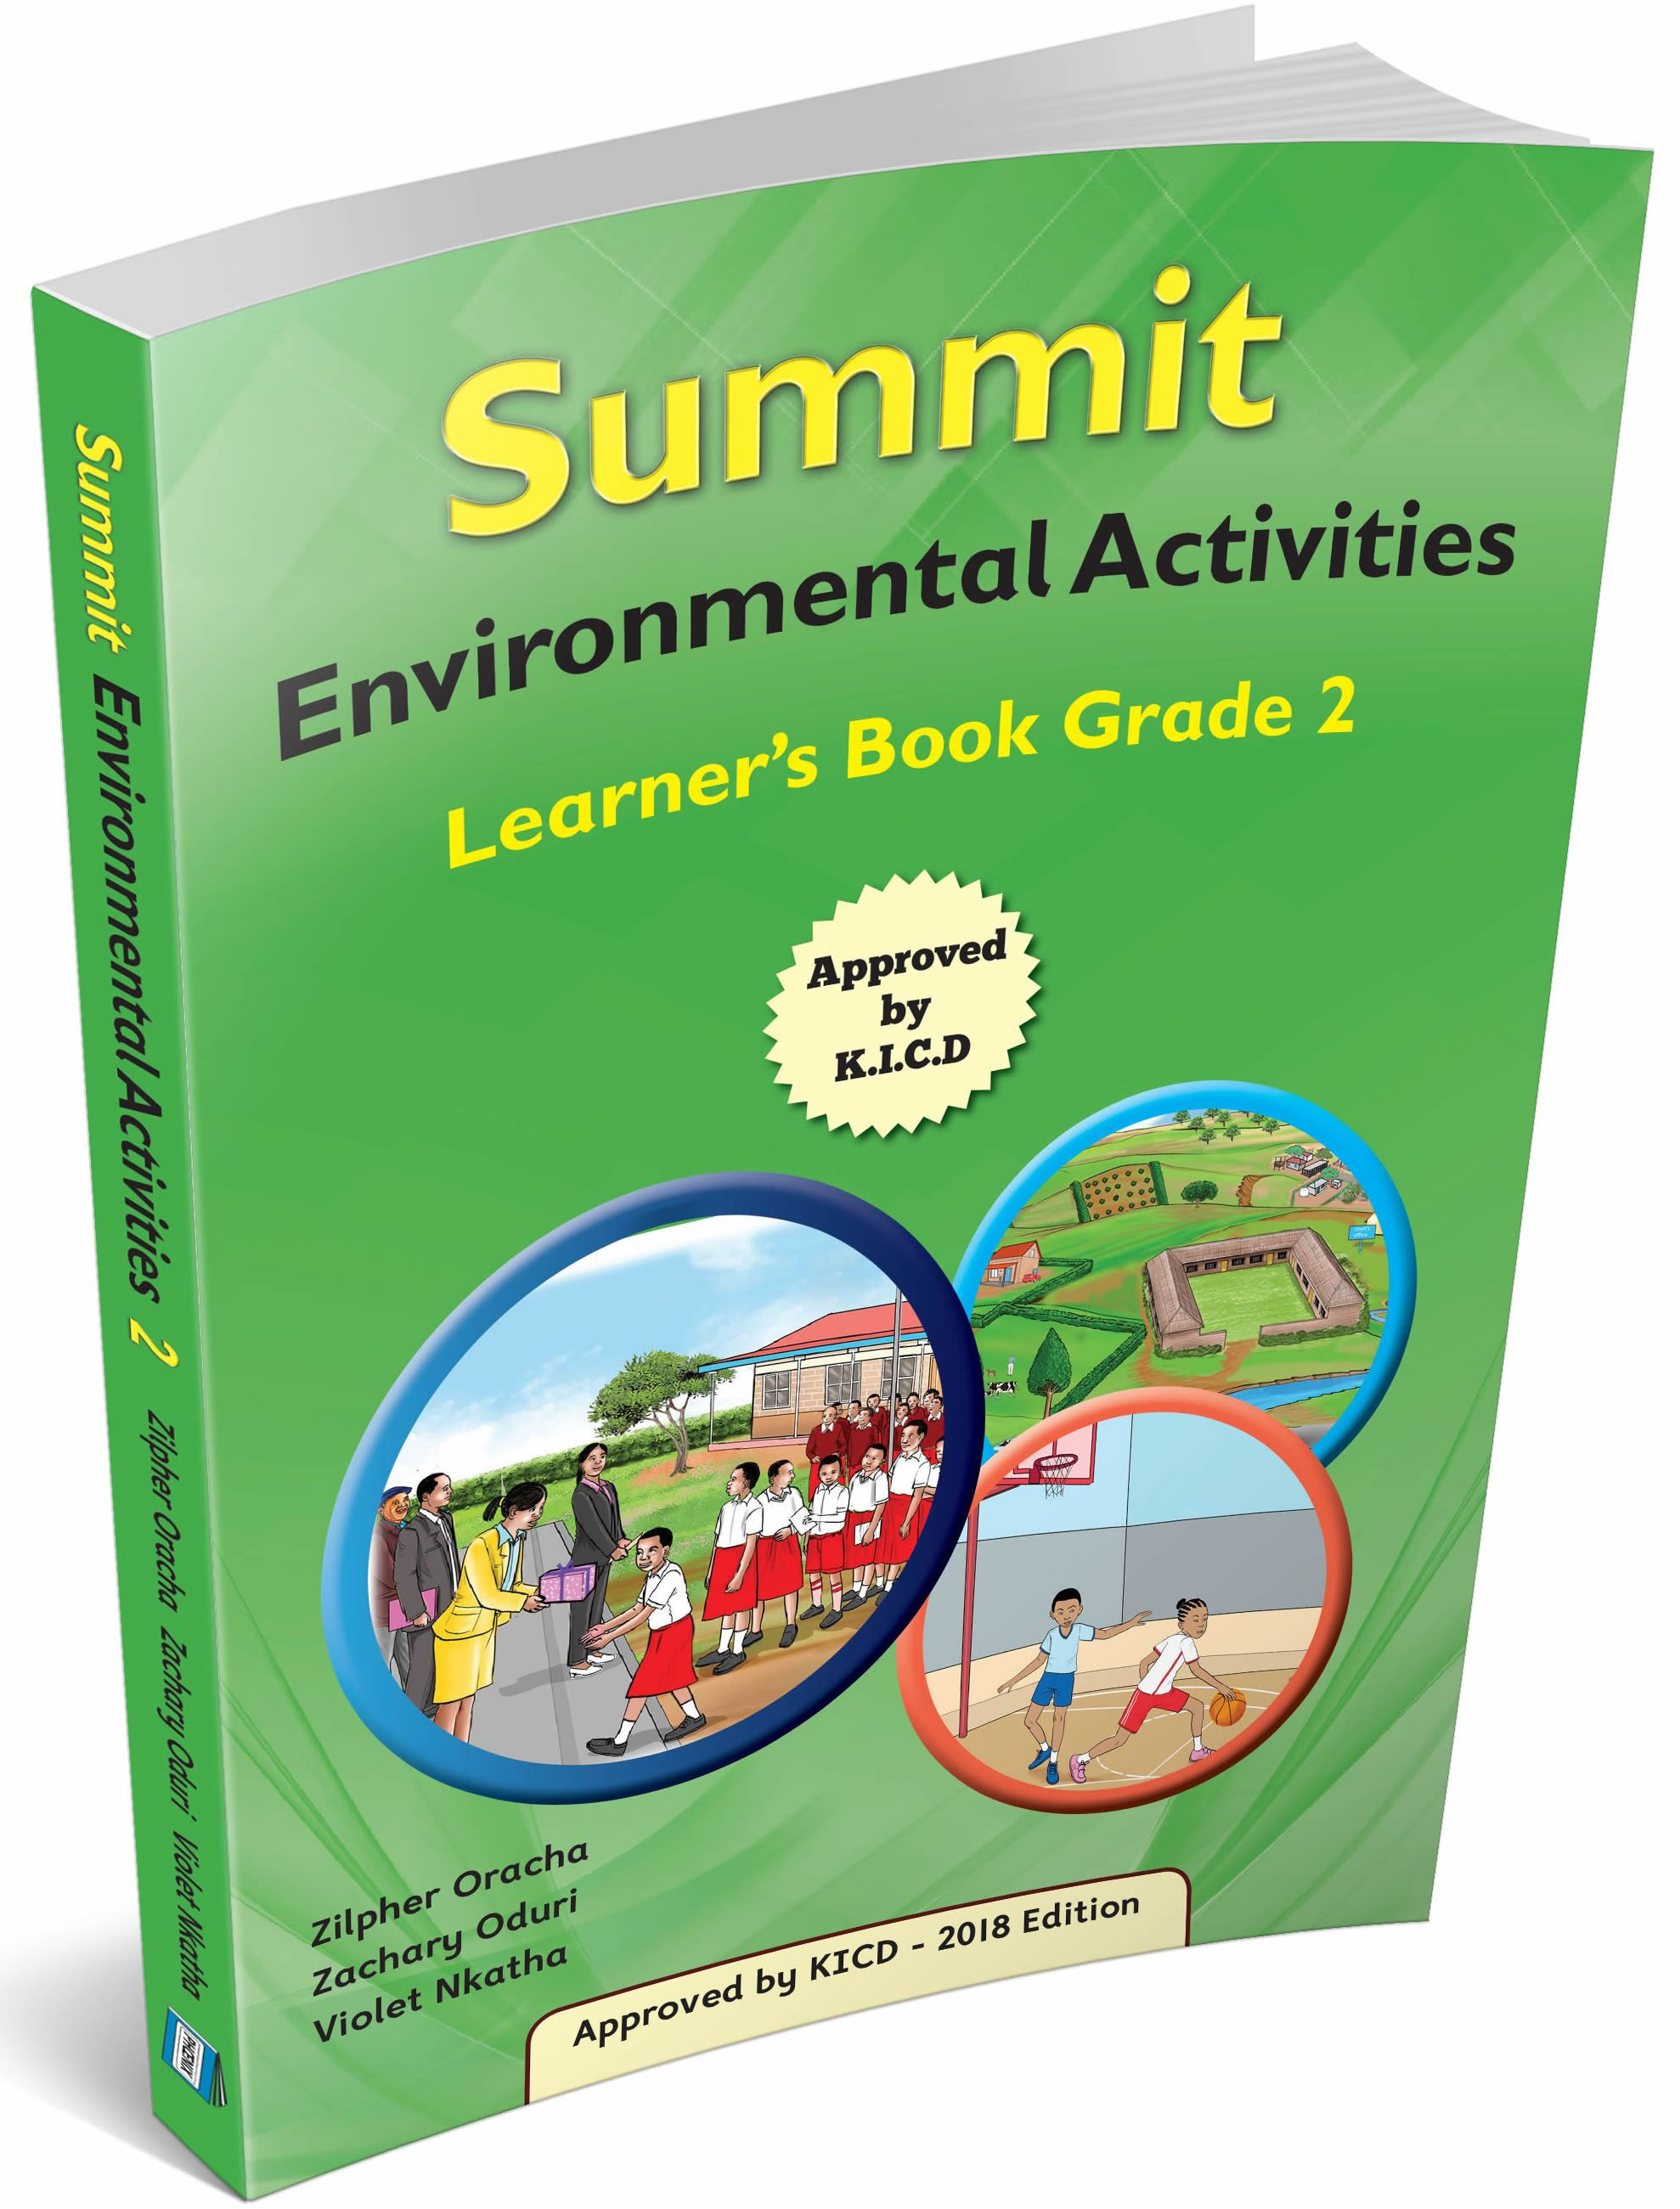 Summit Environmental Activities Lerner's Book Grade 2